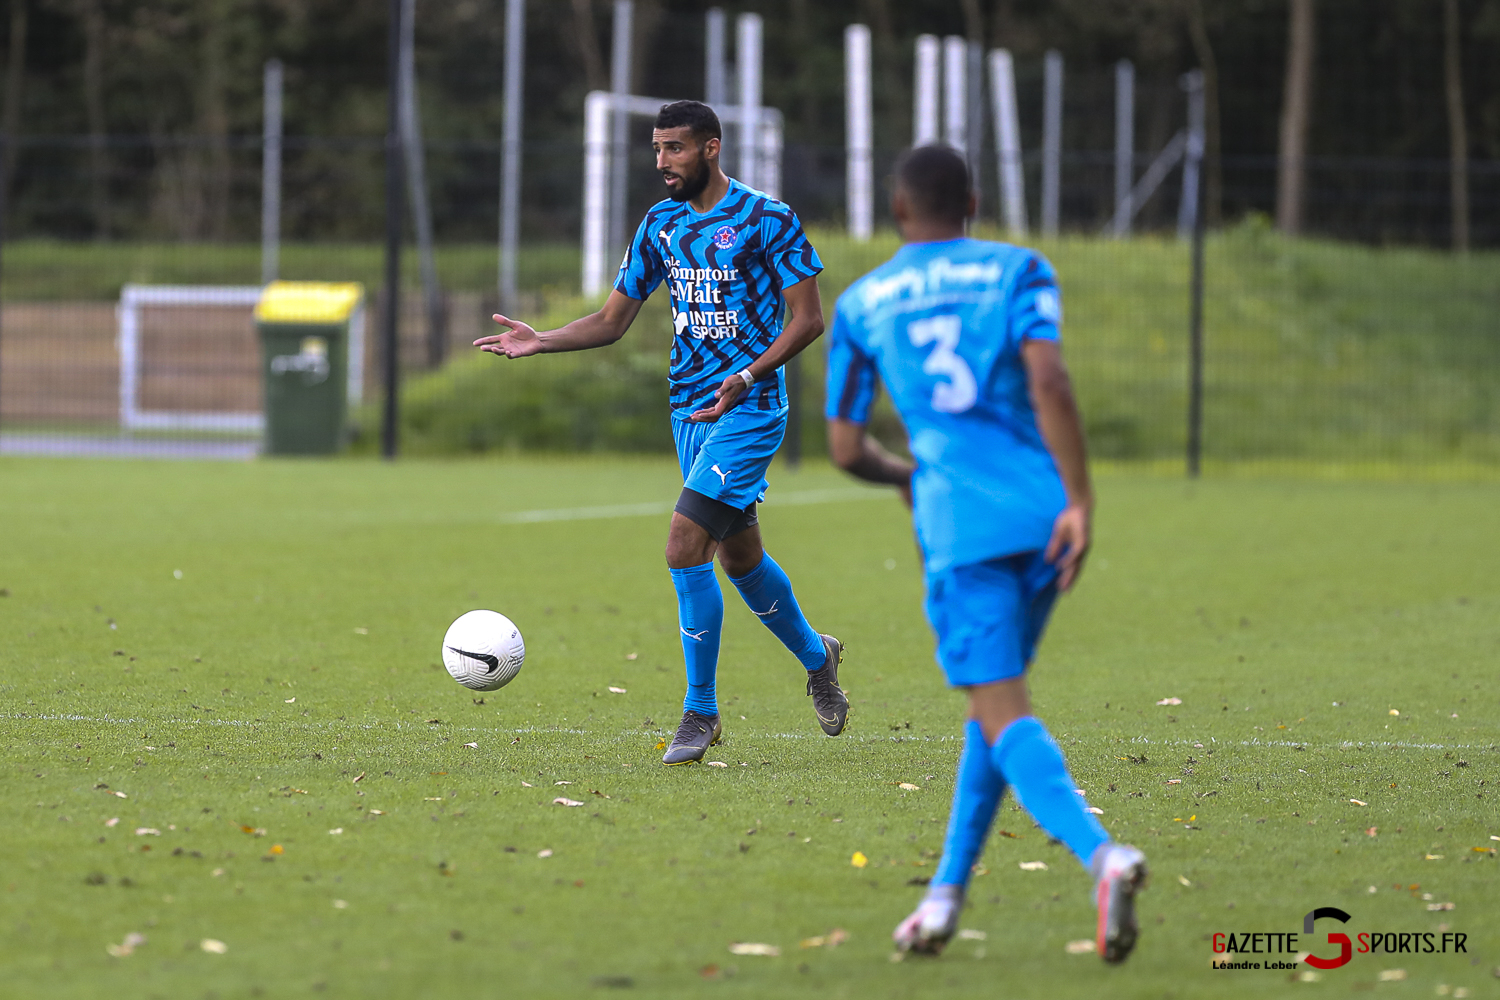 Football Nationale 3 Amiens Sc B Vs Ac Amiens 0062 Leandre Leber Gazettesports